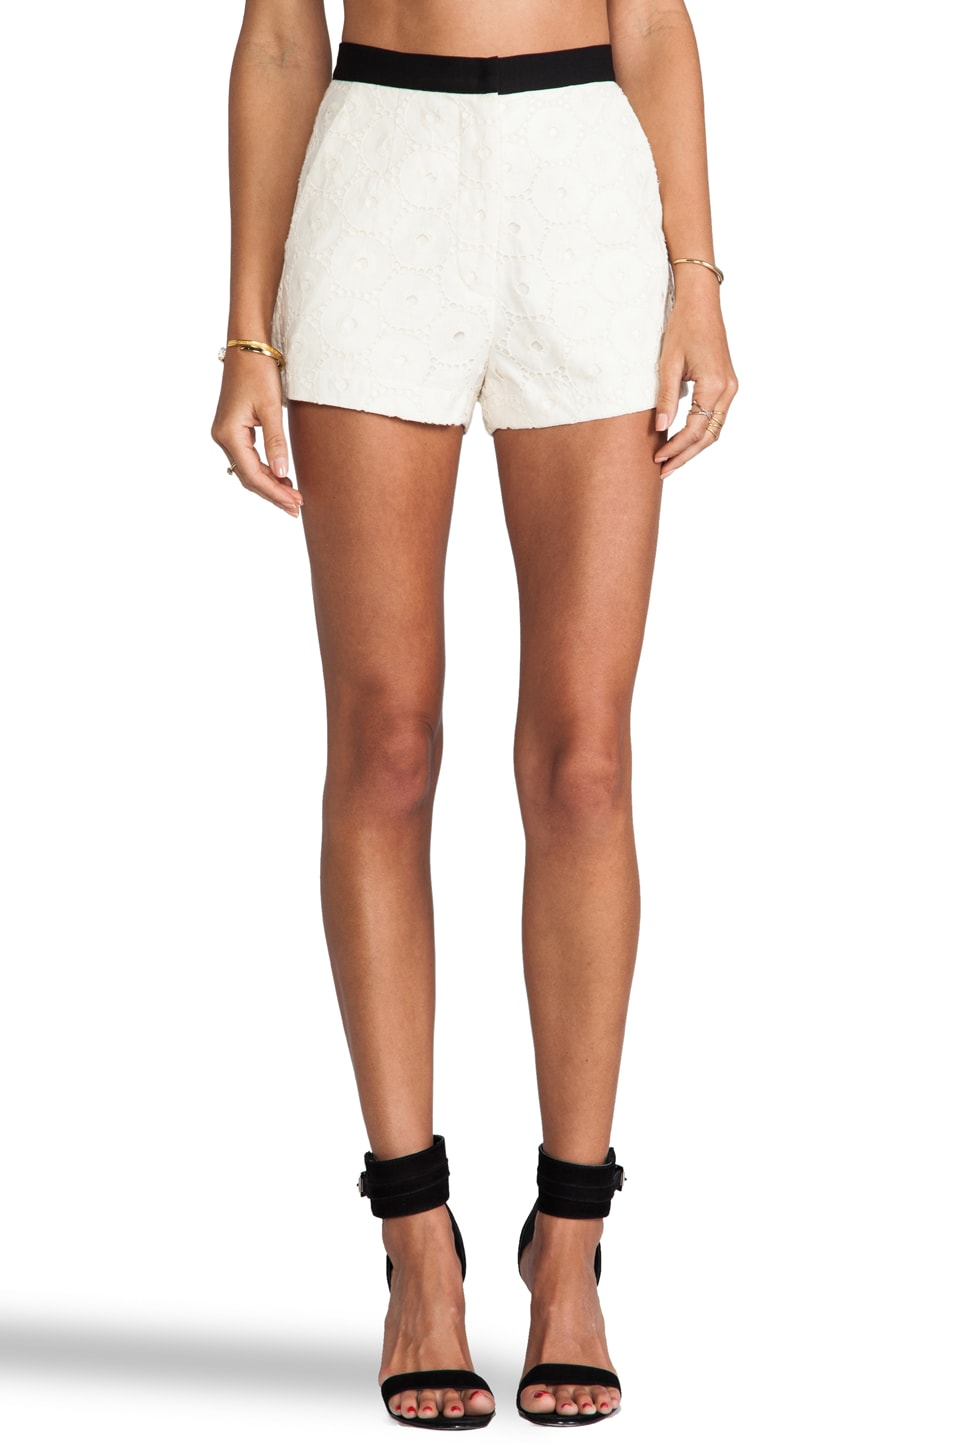 MM Couture by Miss Me Eyelet Shorts in White